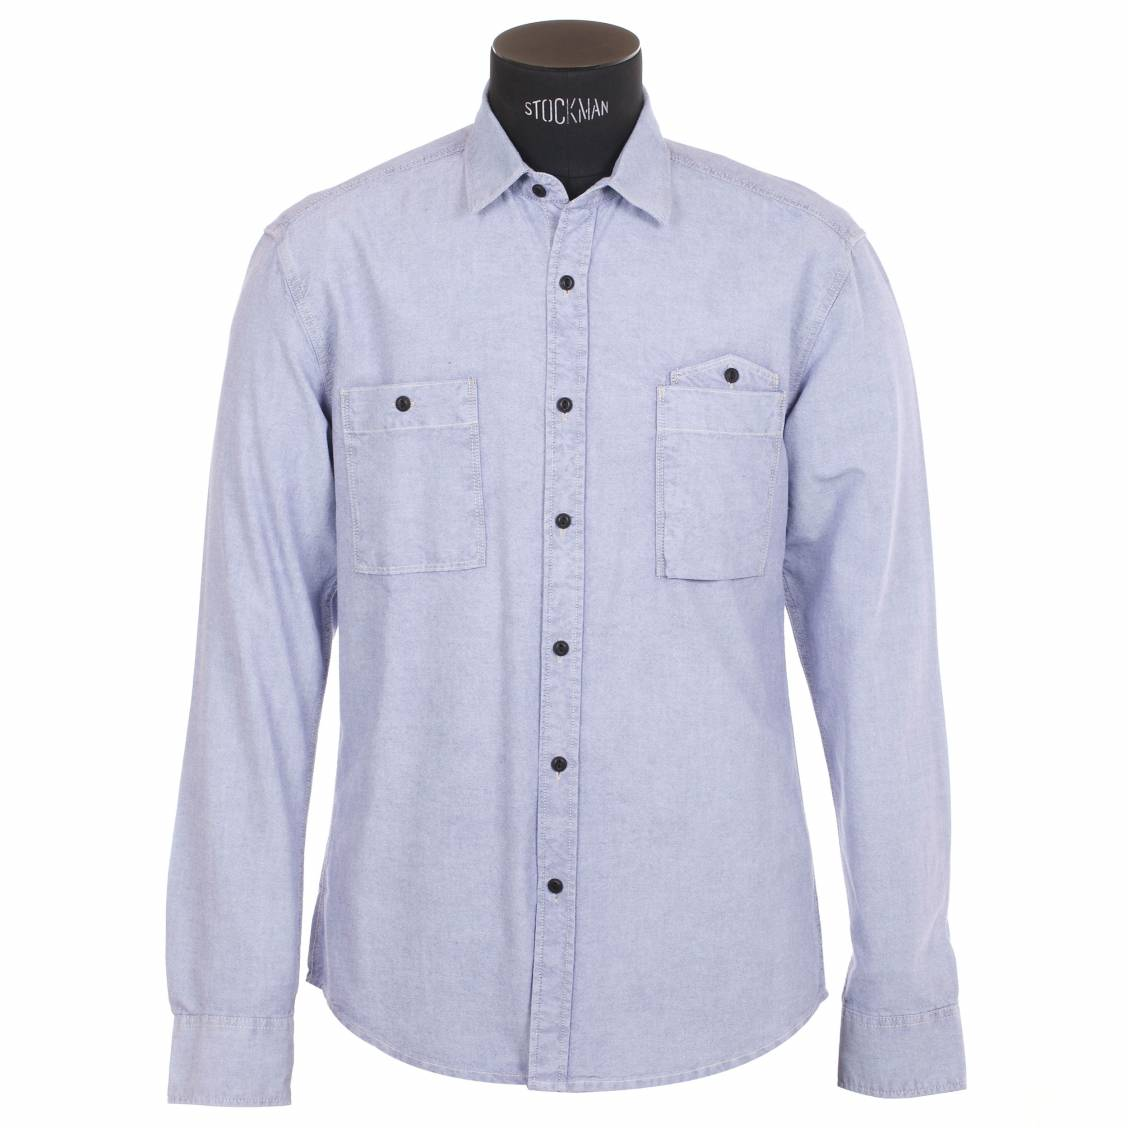 Chemise homme Selected Bleu clair, effet jean. Chemise homme Selected Bleu clair, effet jean